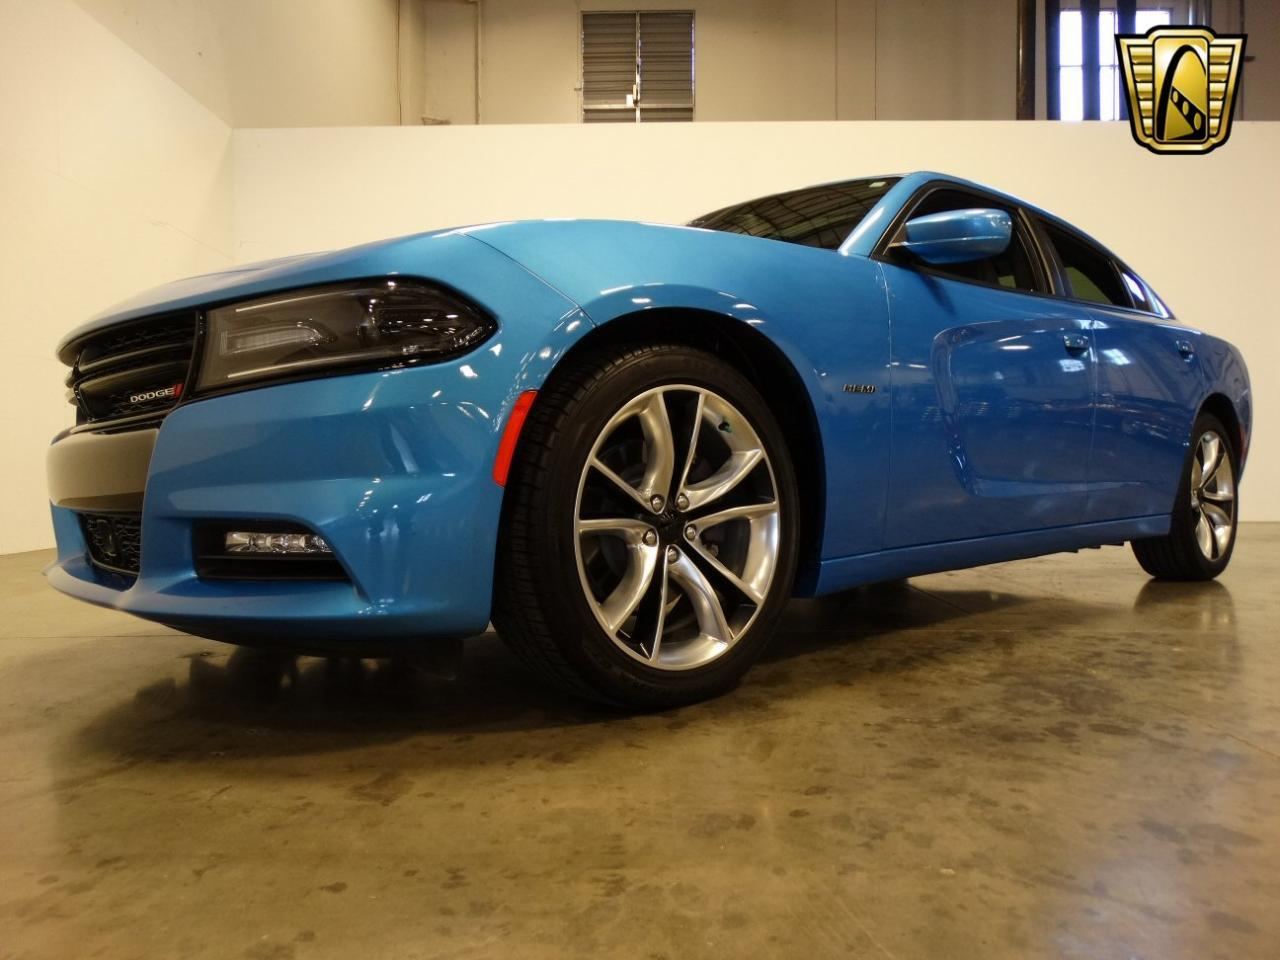 Large Picture of 2016 Dodge Charger located in Tennessee - $38,995.00 Offered by Gateway Classic Cars - Nashville - KGRS